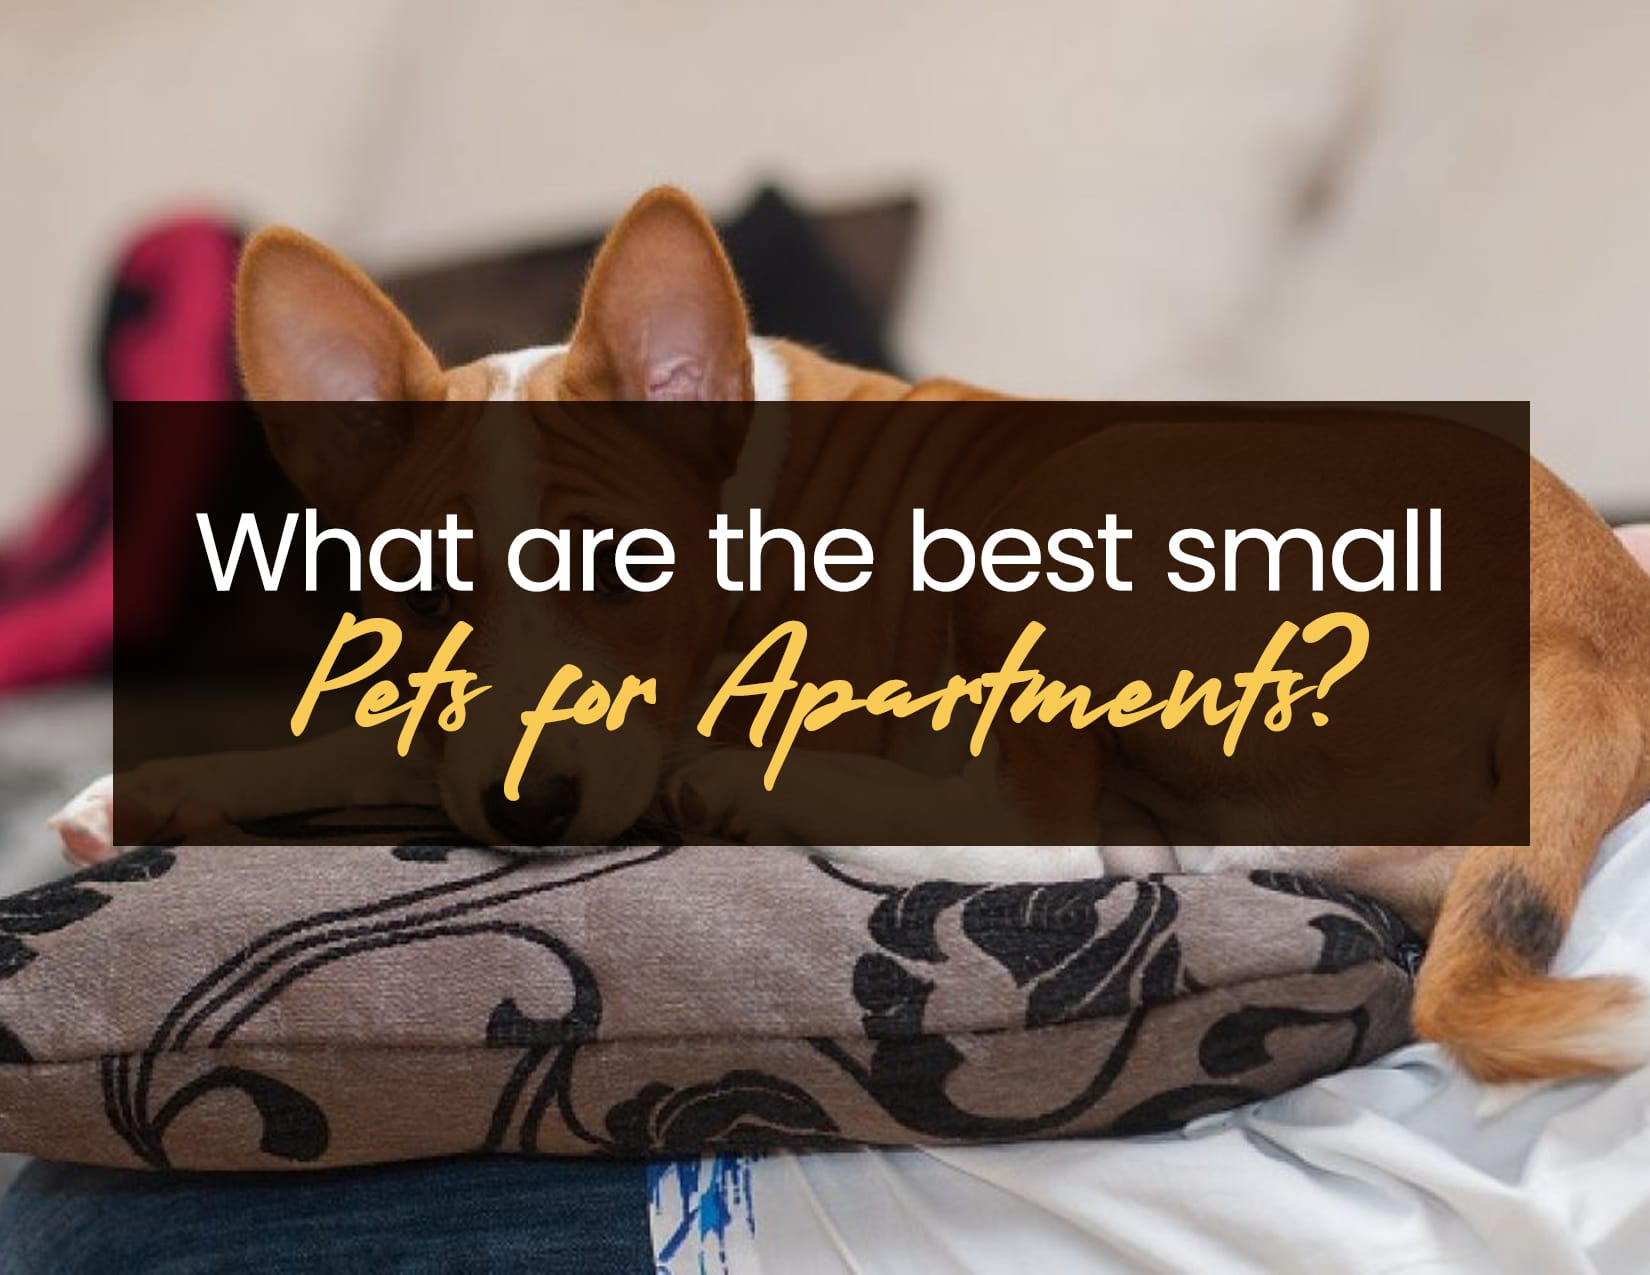 What are the Best Small Pets for Apartments